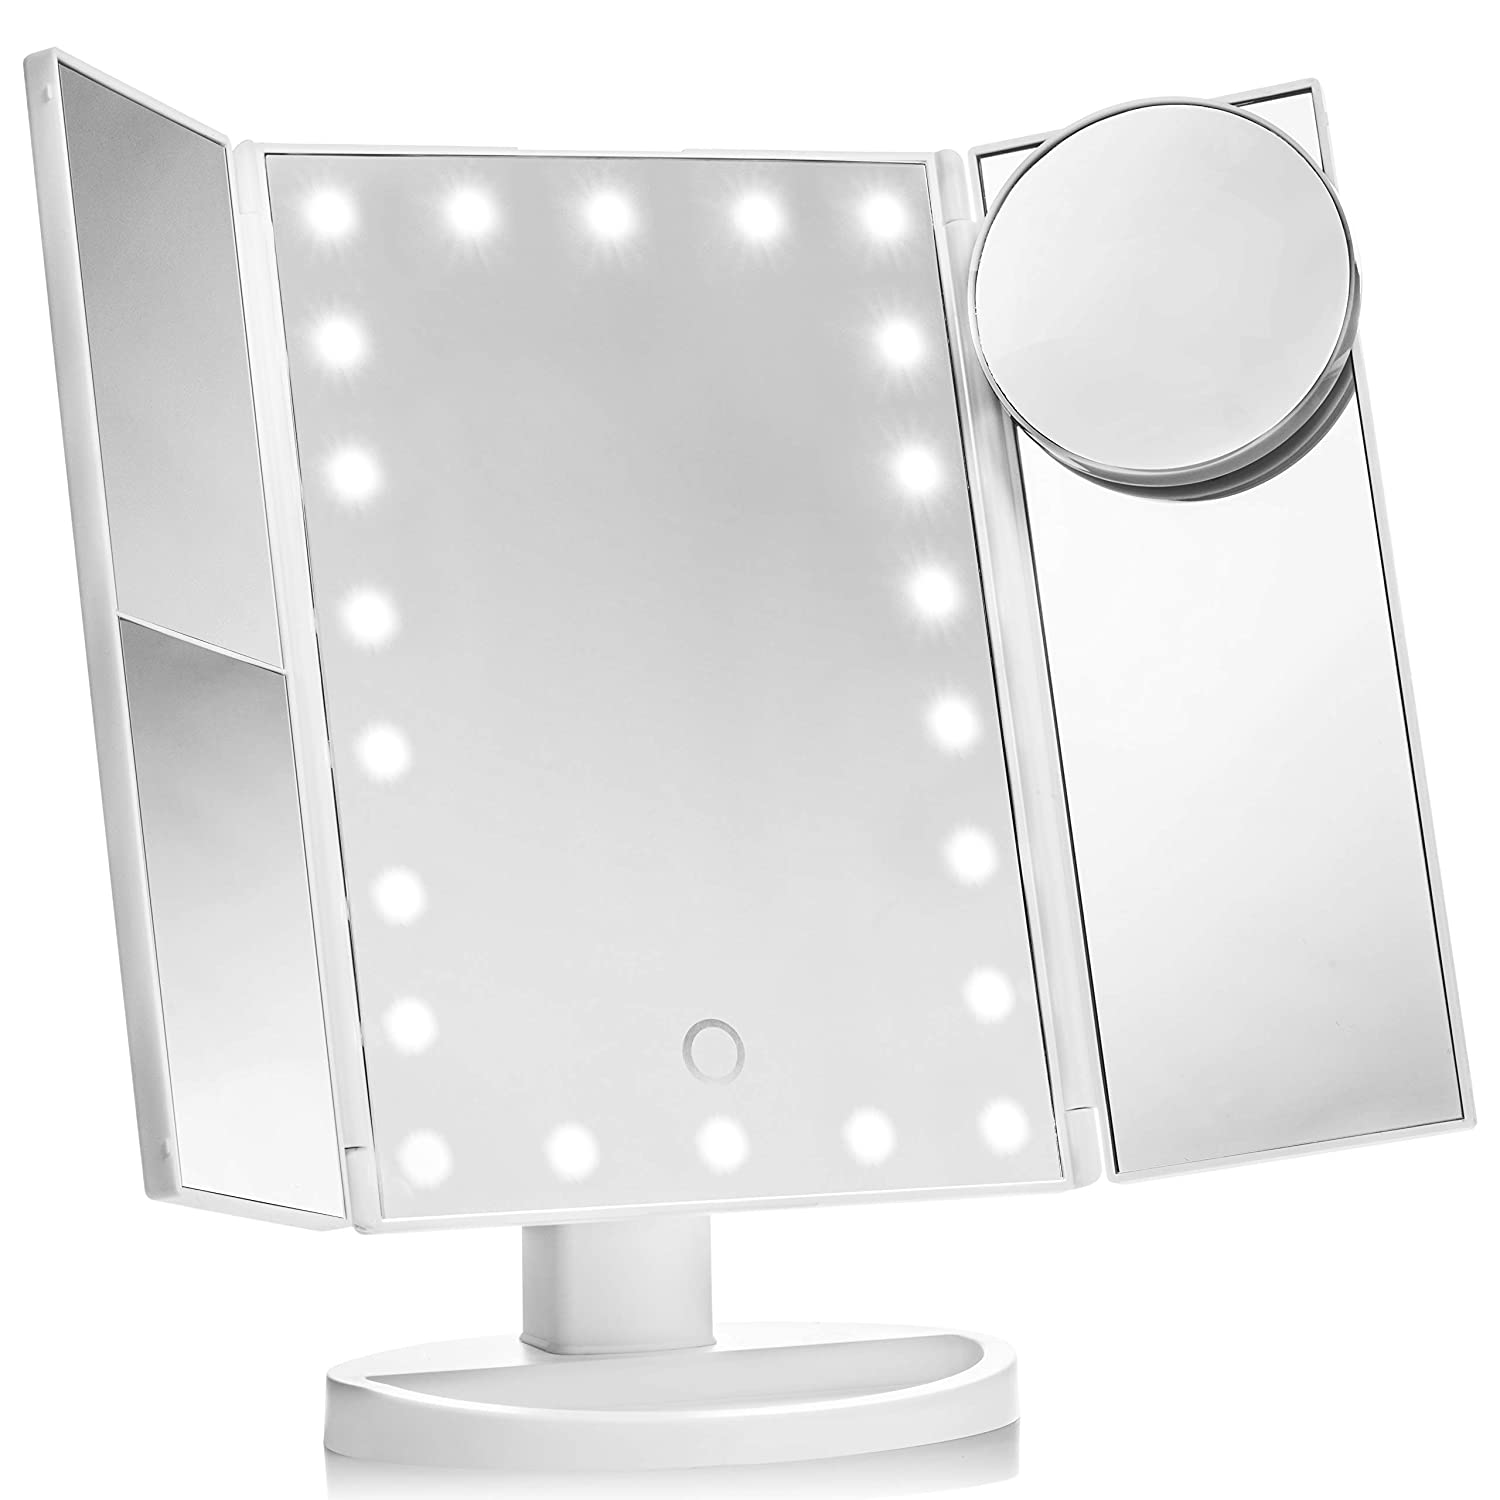 Vanity Makeup Mirror by Gradient Beauty Vanity Mirror with 22 Led Lights Portable Magnifying Trifold Mirror for Women Lit Makeup Room Accessory Touch Sensitive Switch